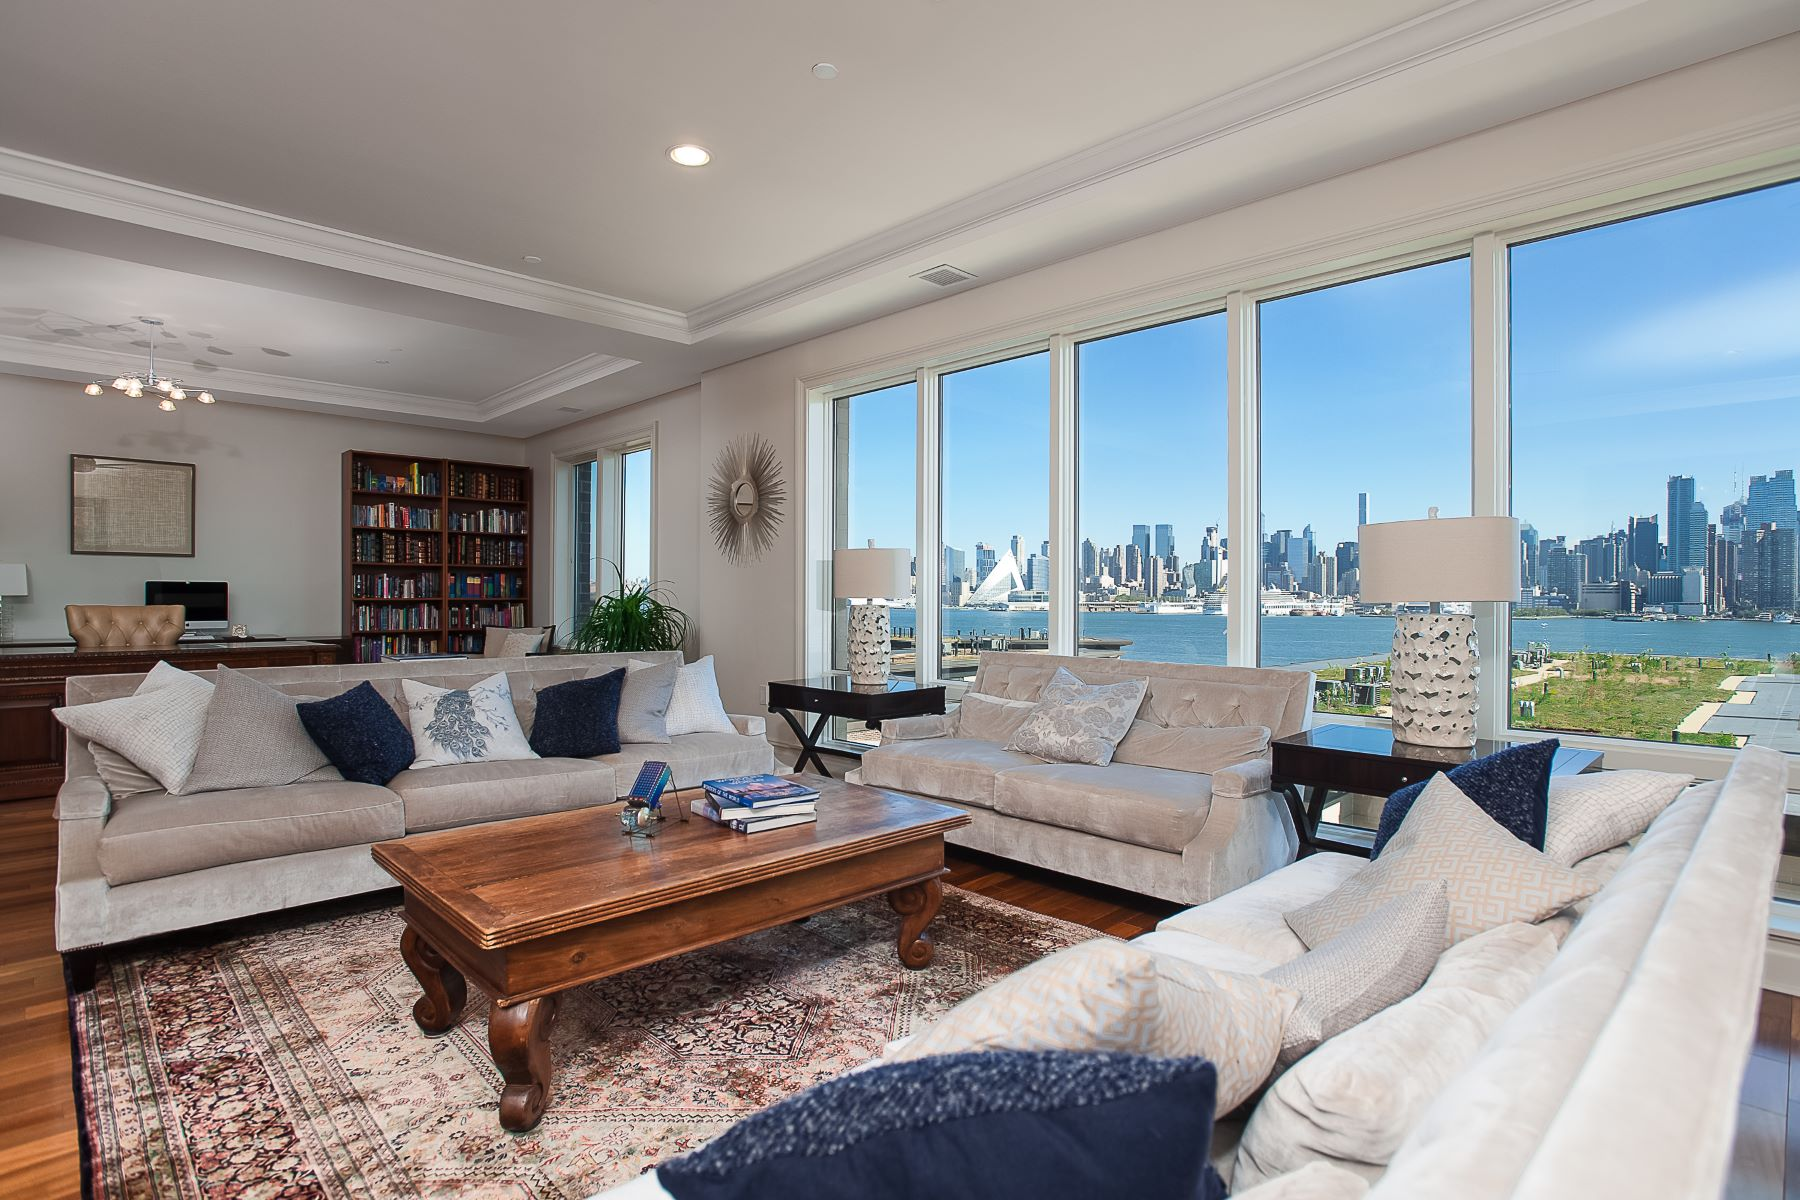 Condominium for Sale at Henley on the Hudson ~ Waterfront 3BR Penthouse 61 Eton Row Weehawken, New Jersey 07086 United States